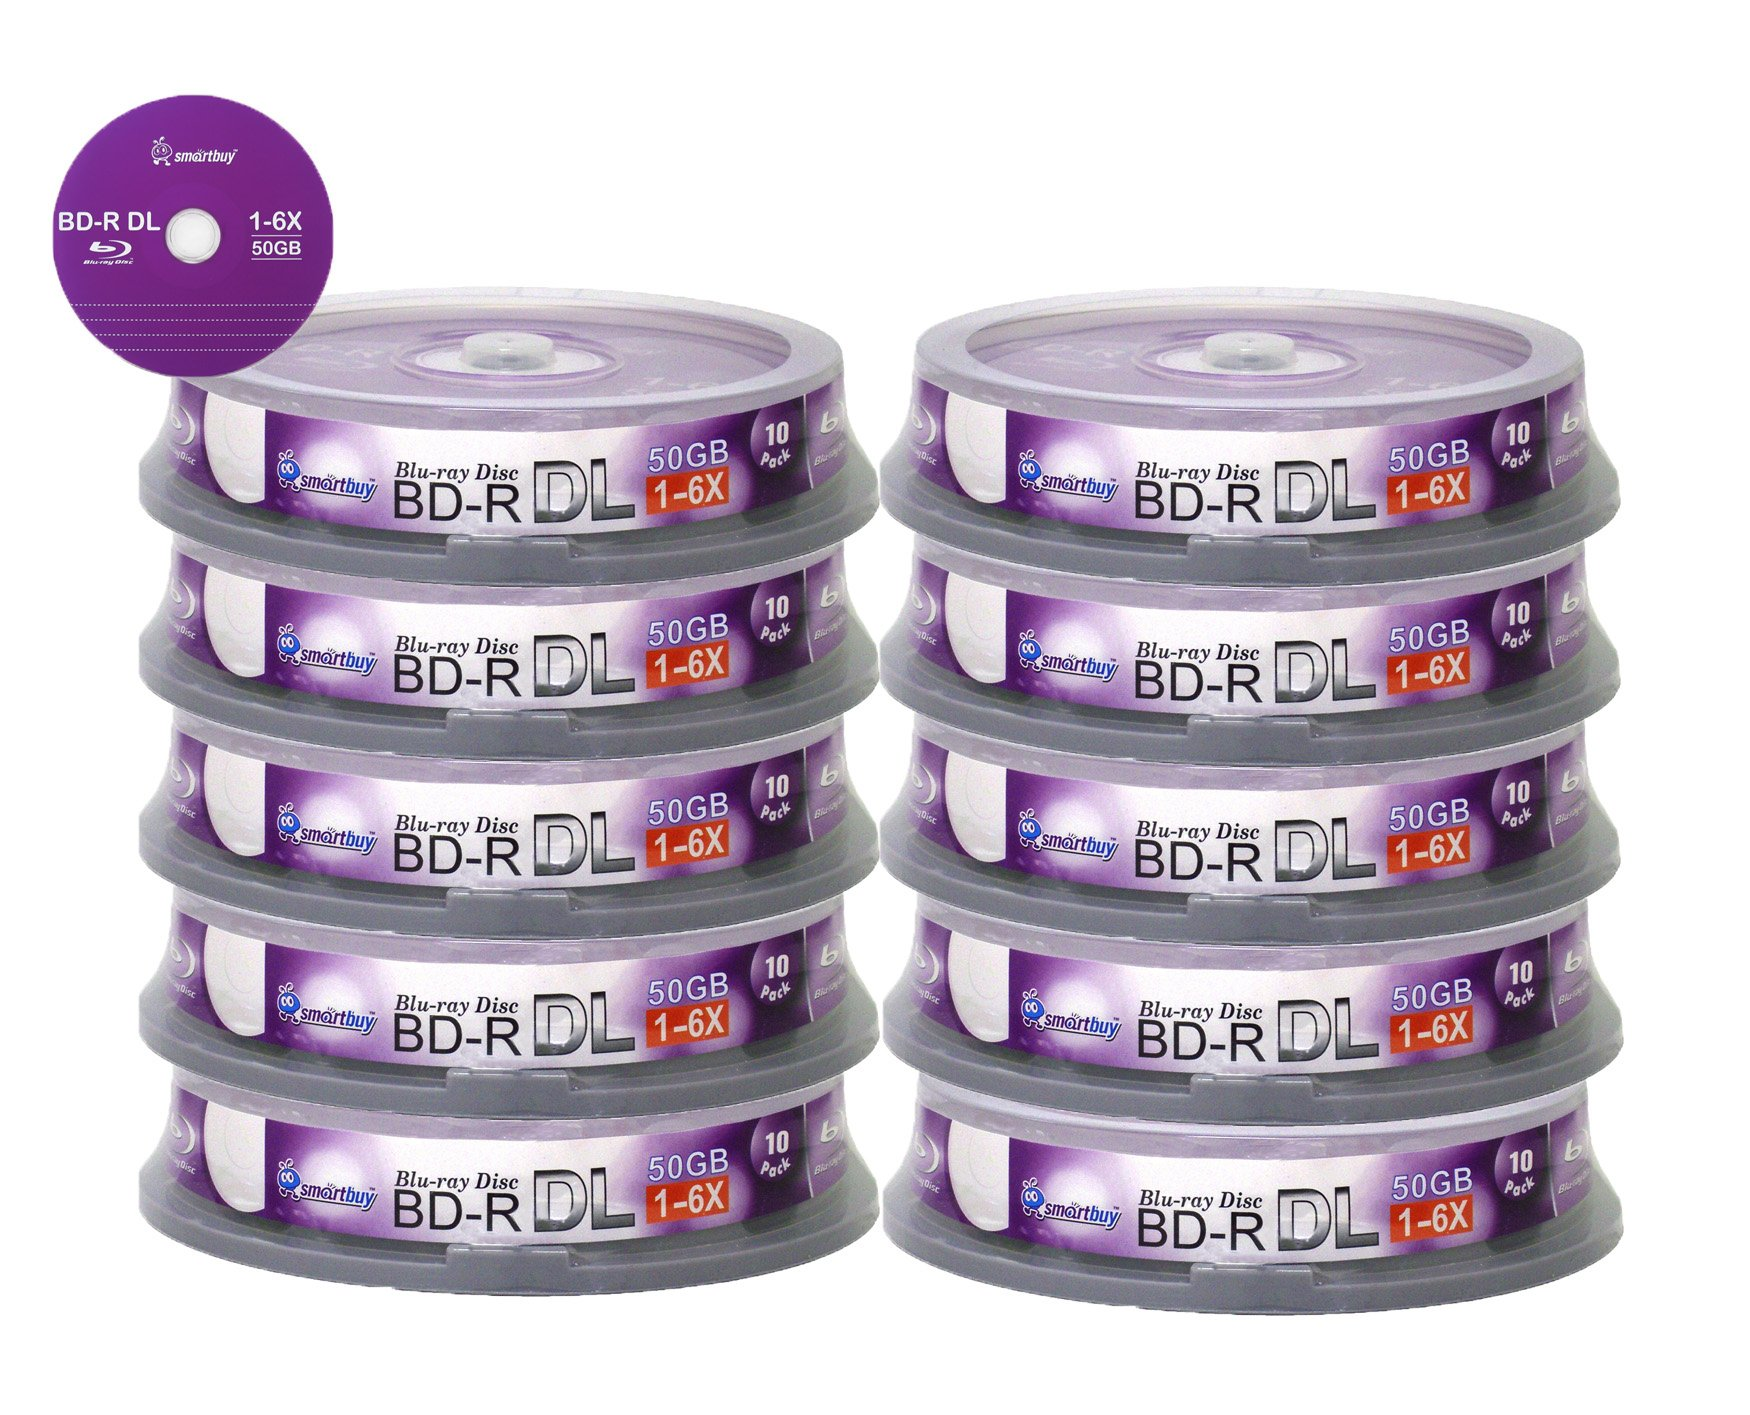 Smartbuy 50gb 6x Blu-ray Bd-r Dl Dual Layer Double Layer Logo Blank Data Recordable Media Disc Spindle (100-Disc)